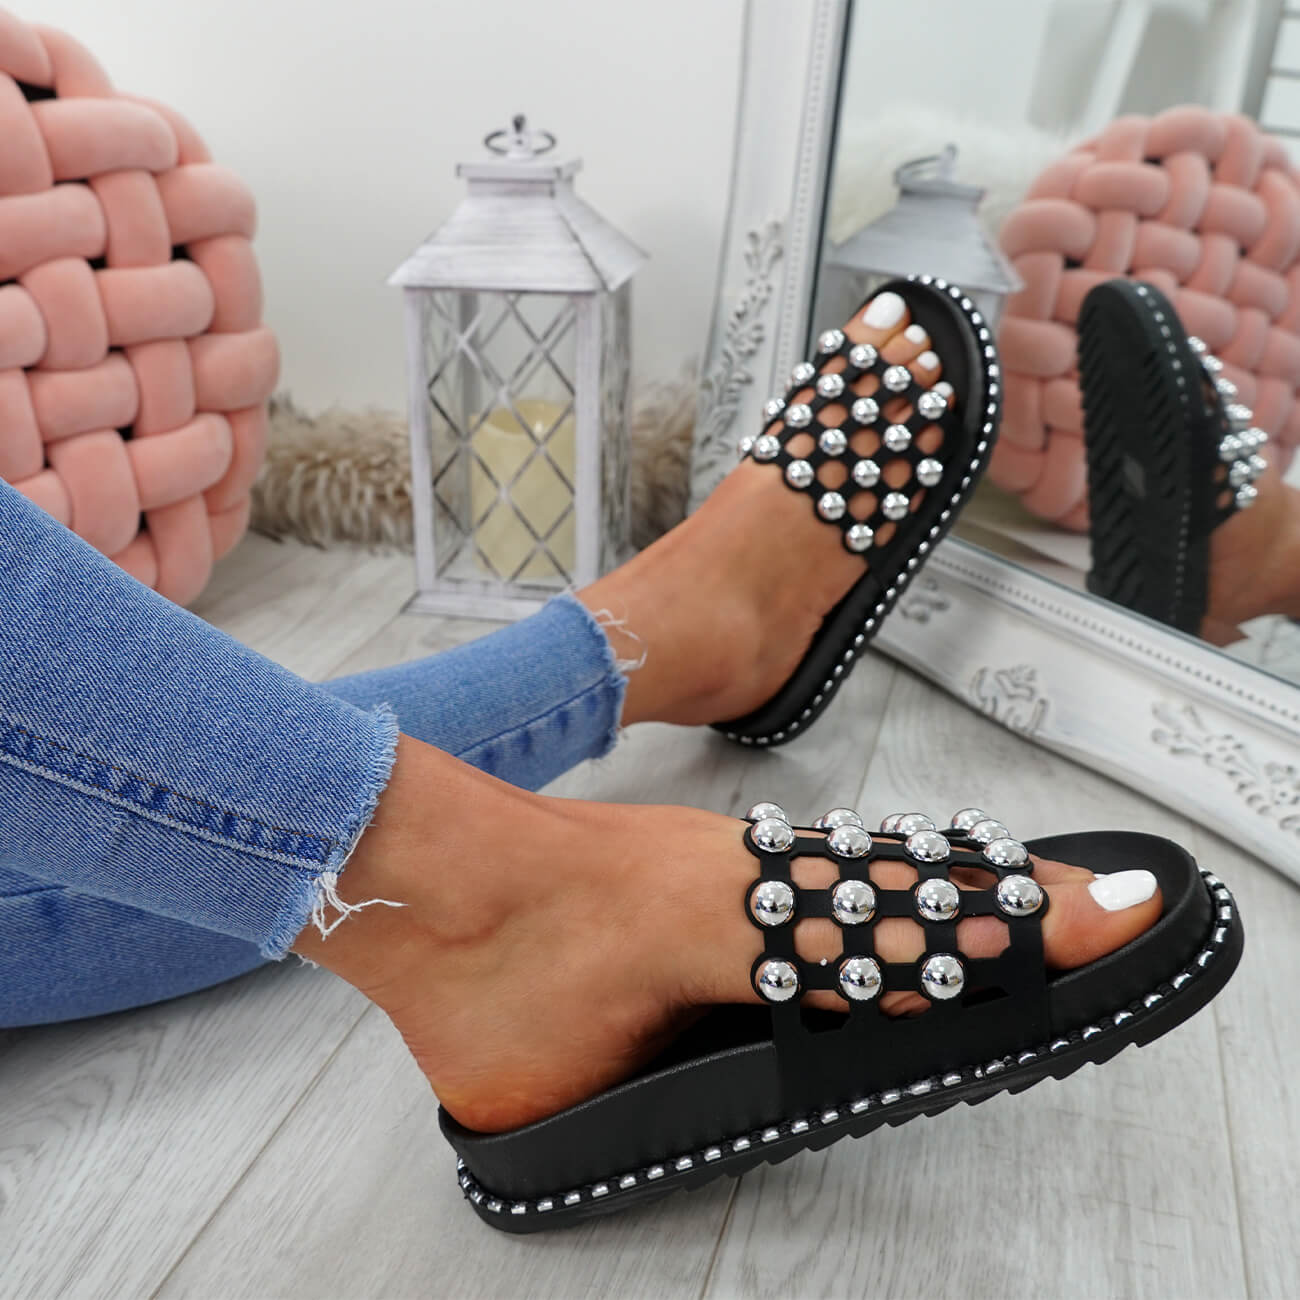 WOMENS-LADIES-PEARL-STUDDED-SLIP-ON-FLAT-SANDALS-HEELS-FLIP-FLOP-SHOES-SIZE thumbnail 7